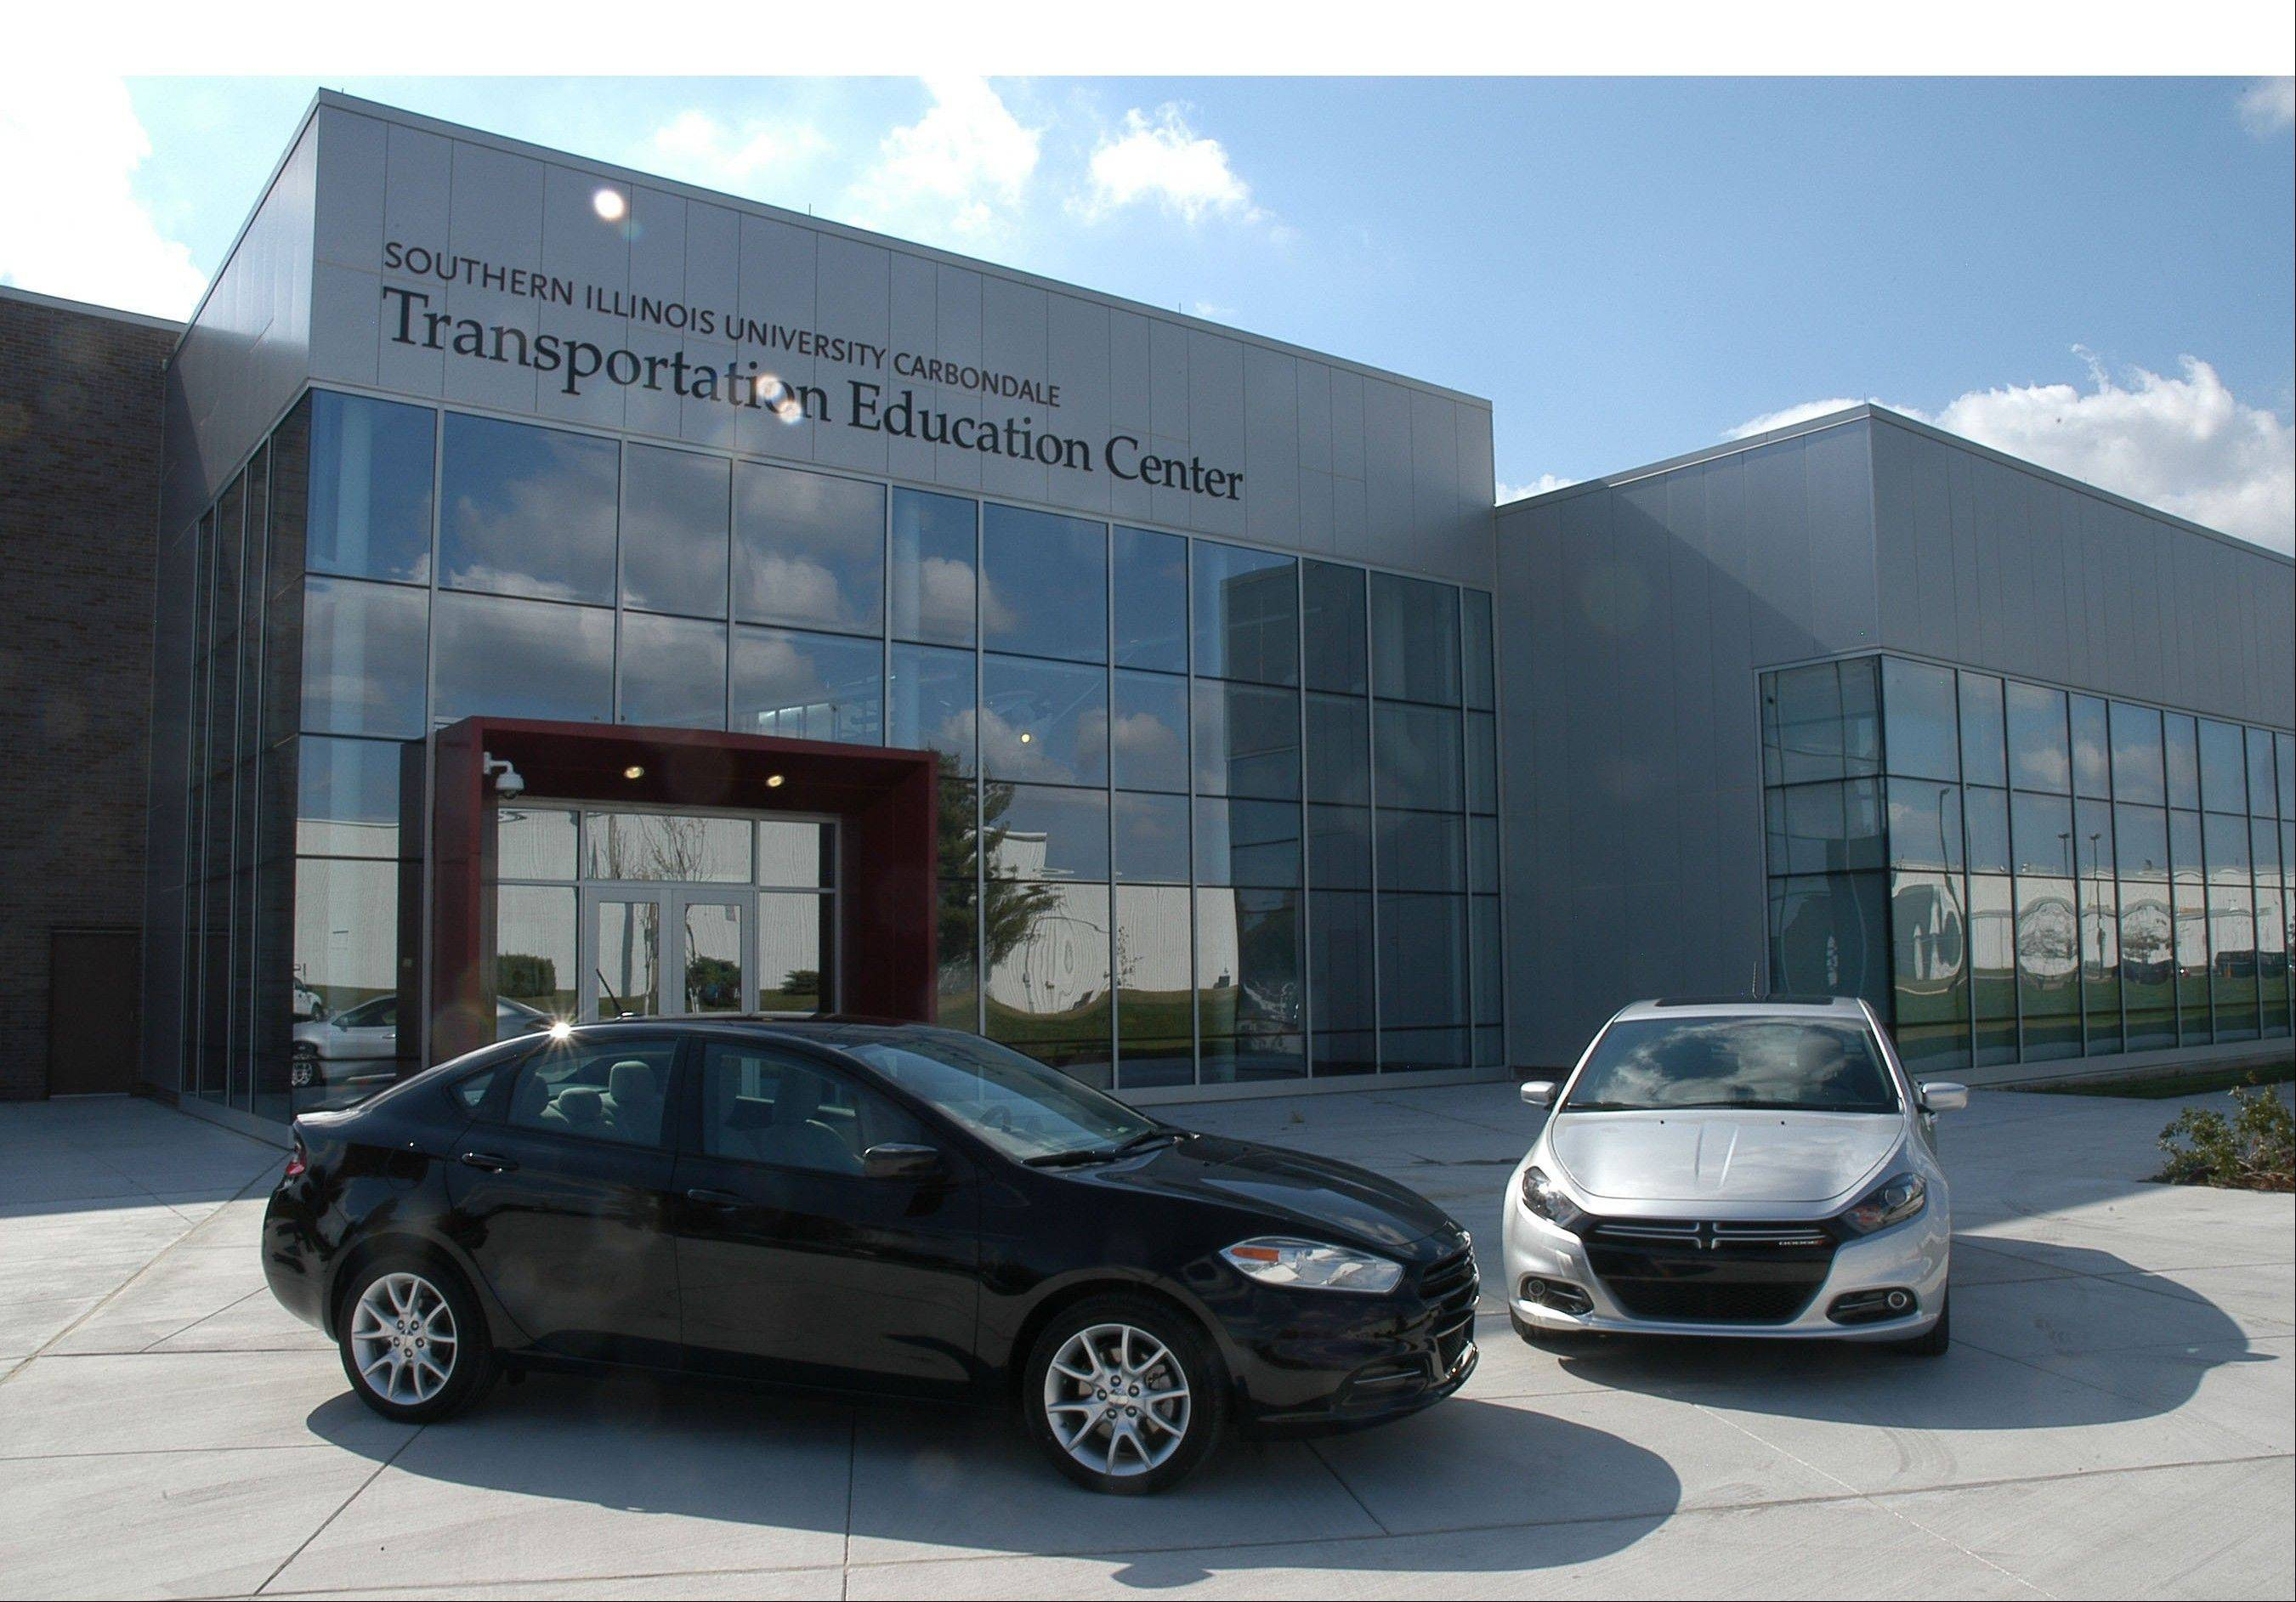 Chrysler Group is donating this black 2013 Dodge Dart to the automotive technology program at Southern Illinois University Carbondale. The Dart was presented today during a grand opening celebration at SIUC's new Transportation Education Center. The Dart is assembled at Chrysler Group's Belvidere, Ill. Assembly Plant. (PRNewsFoto/Chrysler Group LLC)